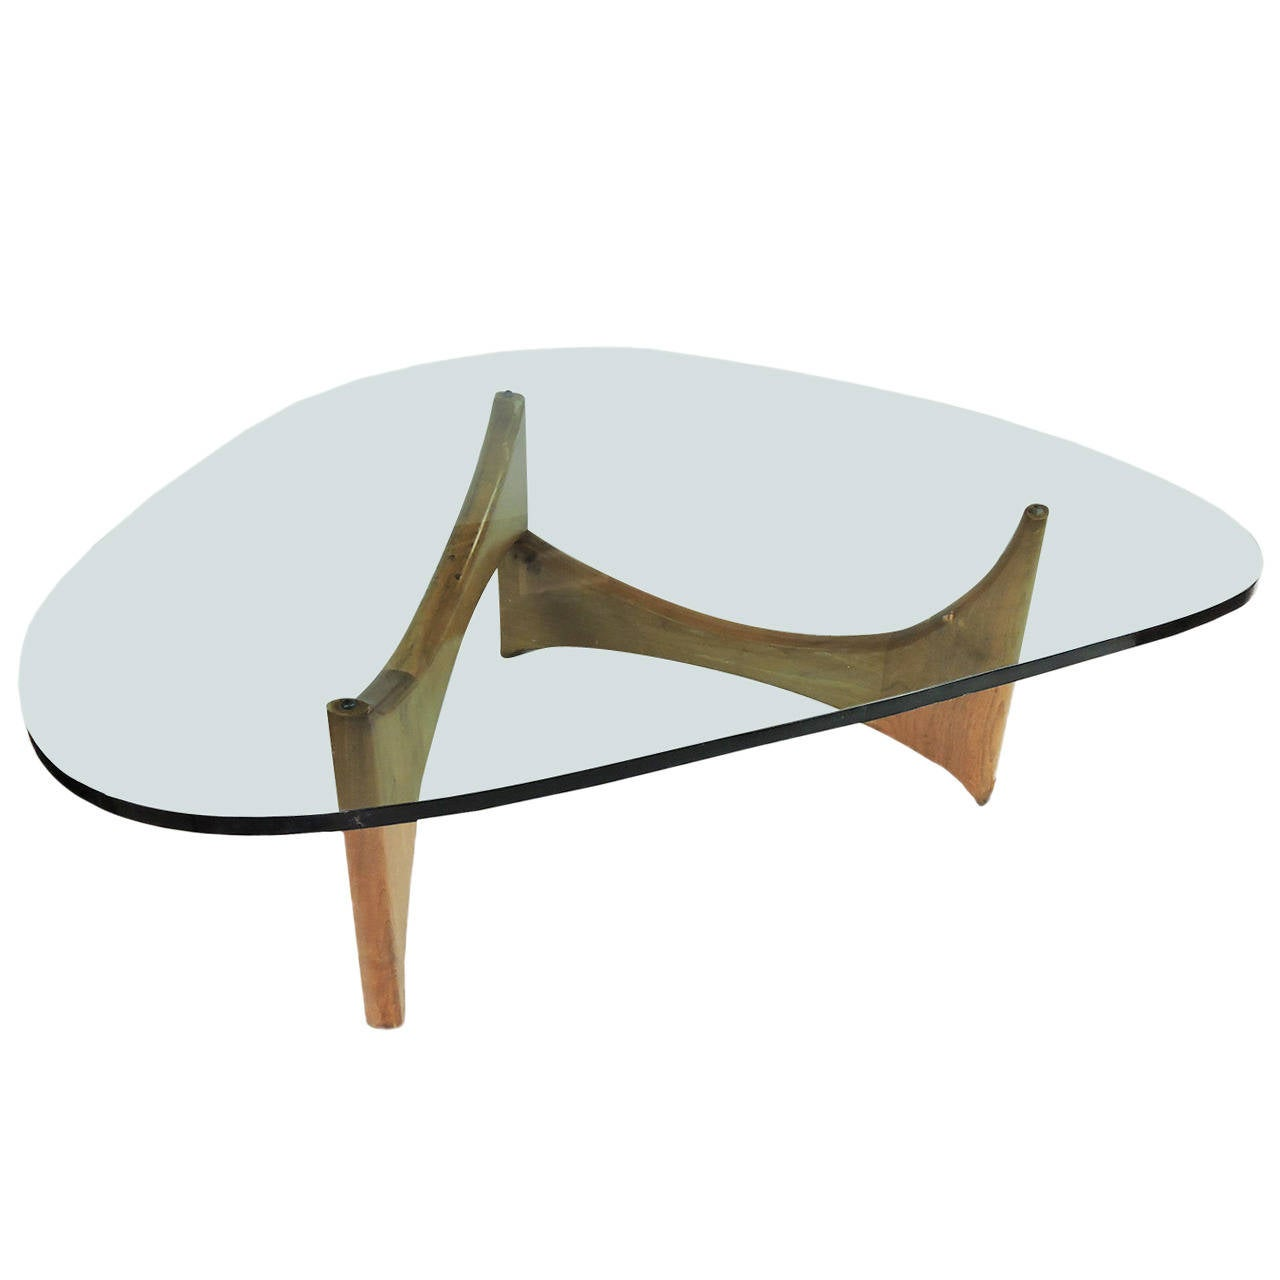 MidCentury Modern Glass and Wood Coffee Table at 1stdibs